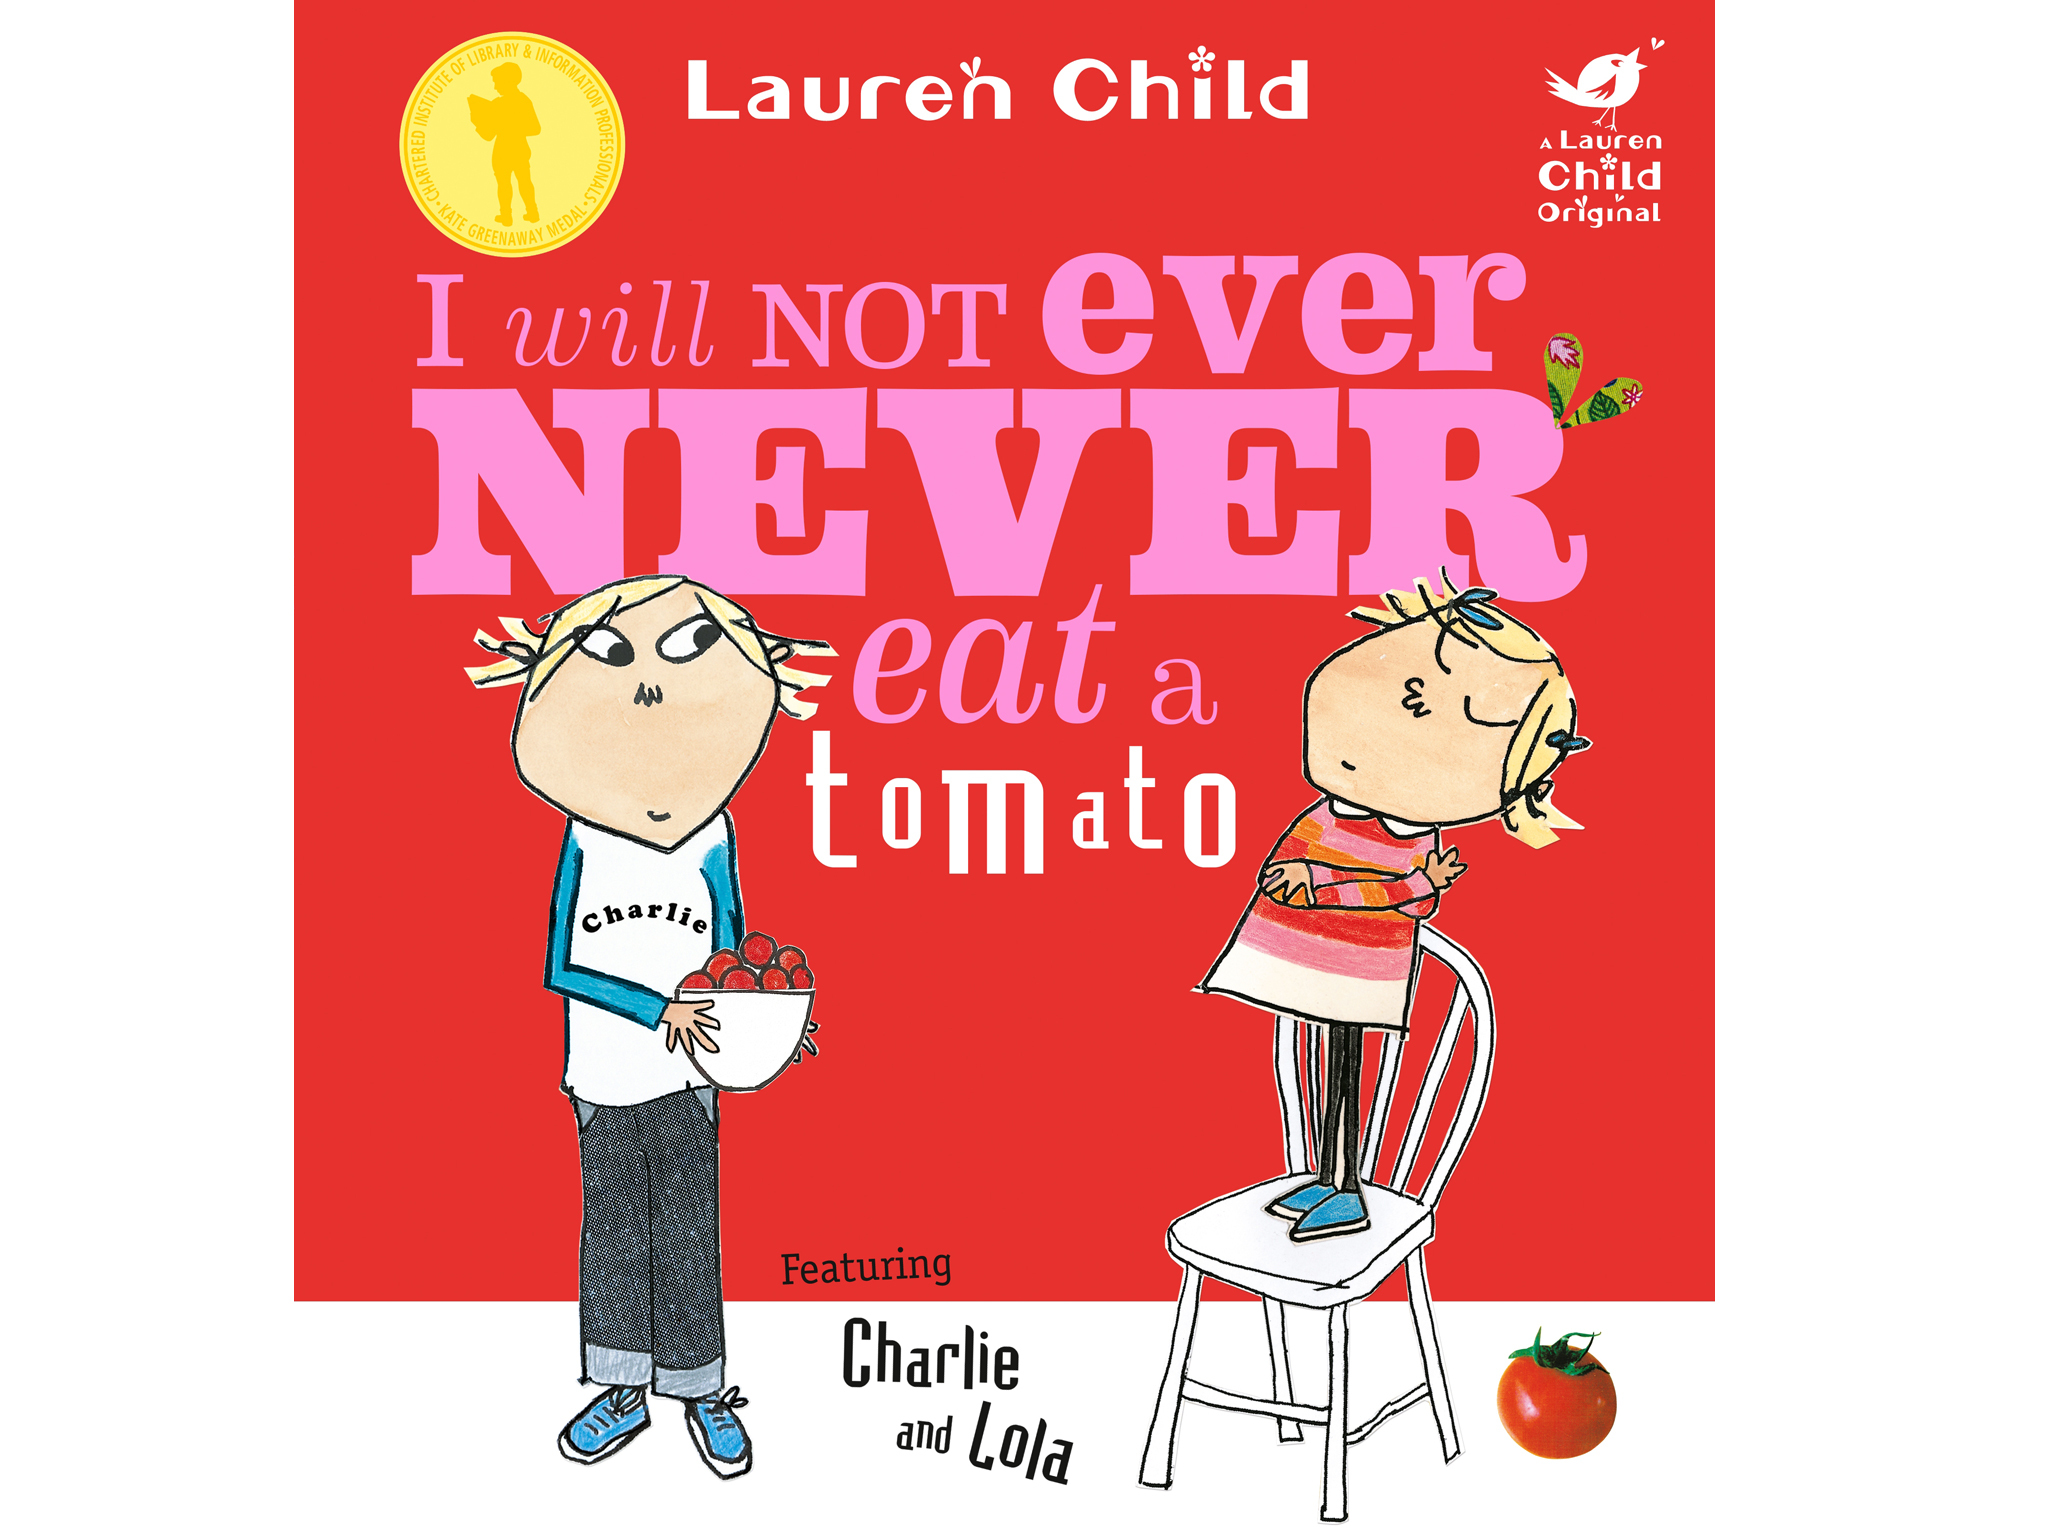 100 best children's books: I will not ever never eat a tomato